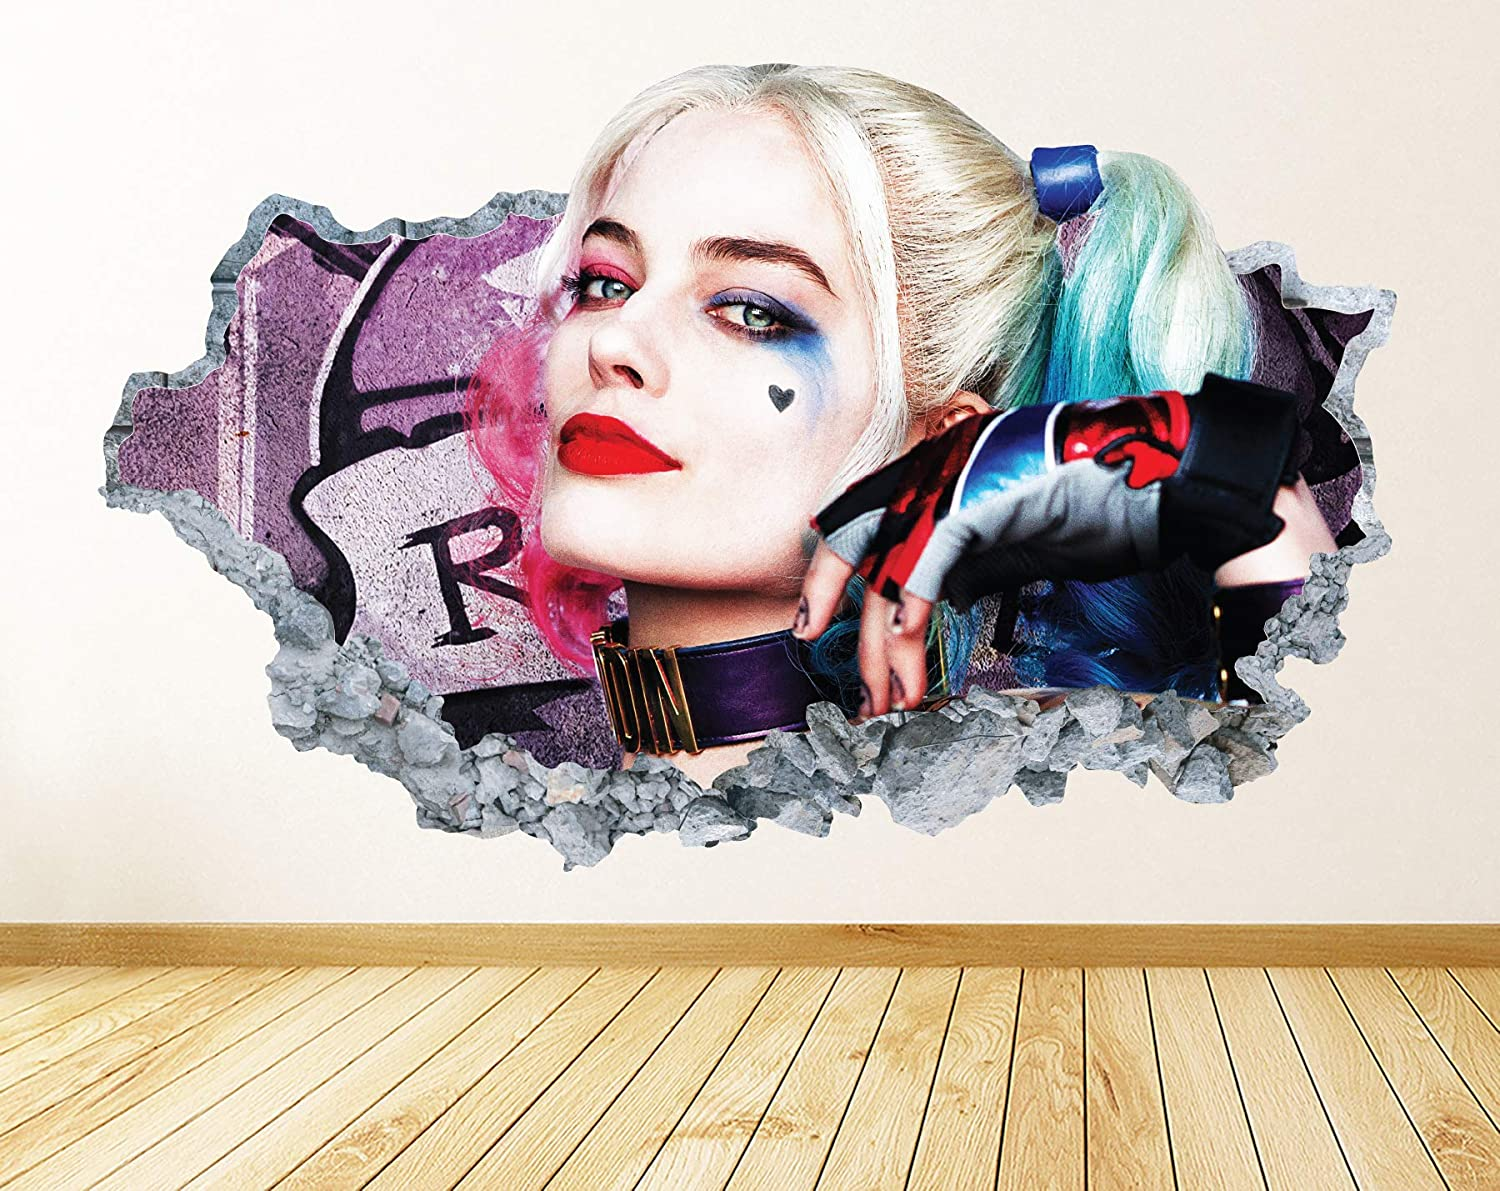 Harley Quinn Wall Decal Smashed 3D Graphic Superheroes Theme Vinyl Wall Sticker Decor Art Kids Room Mural Gift UP124 (38